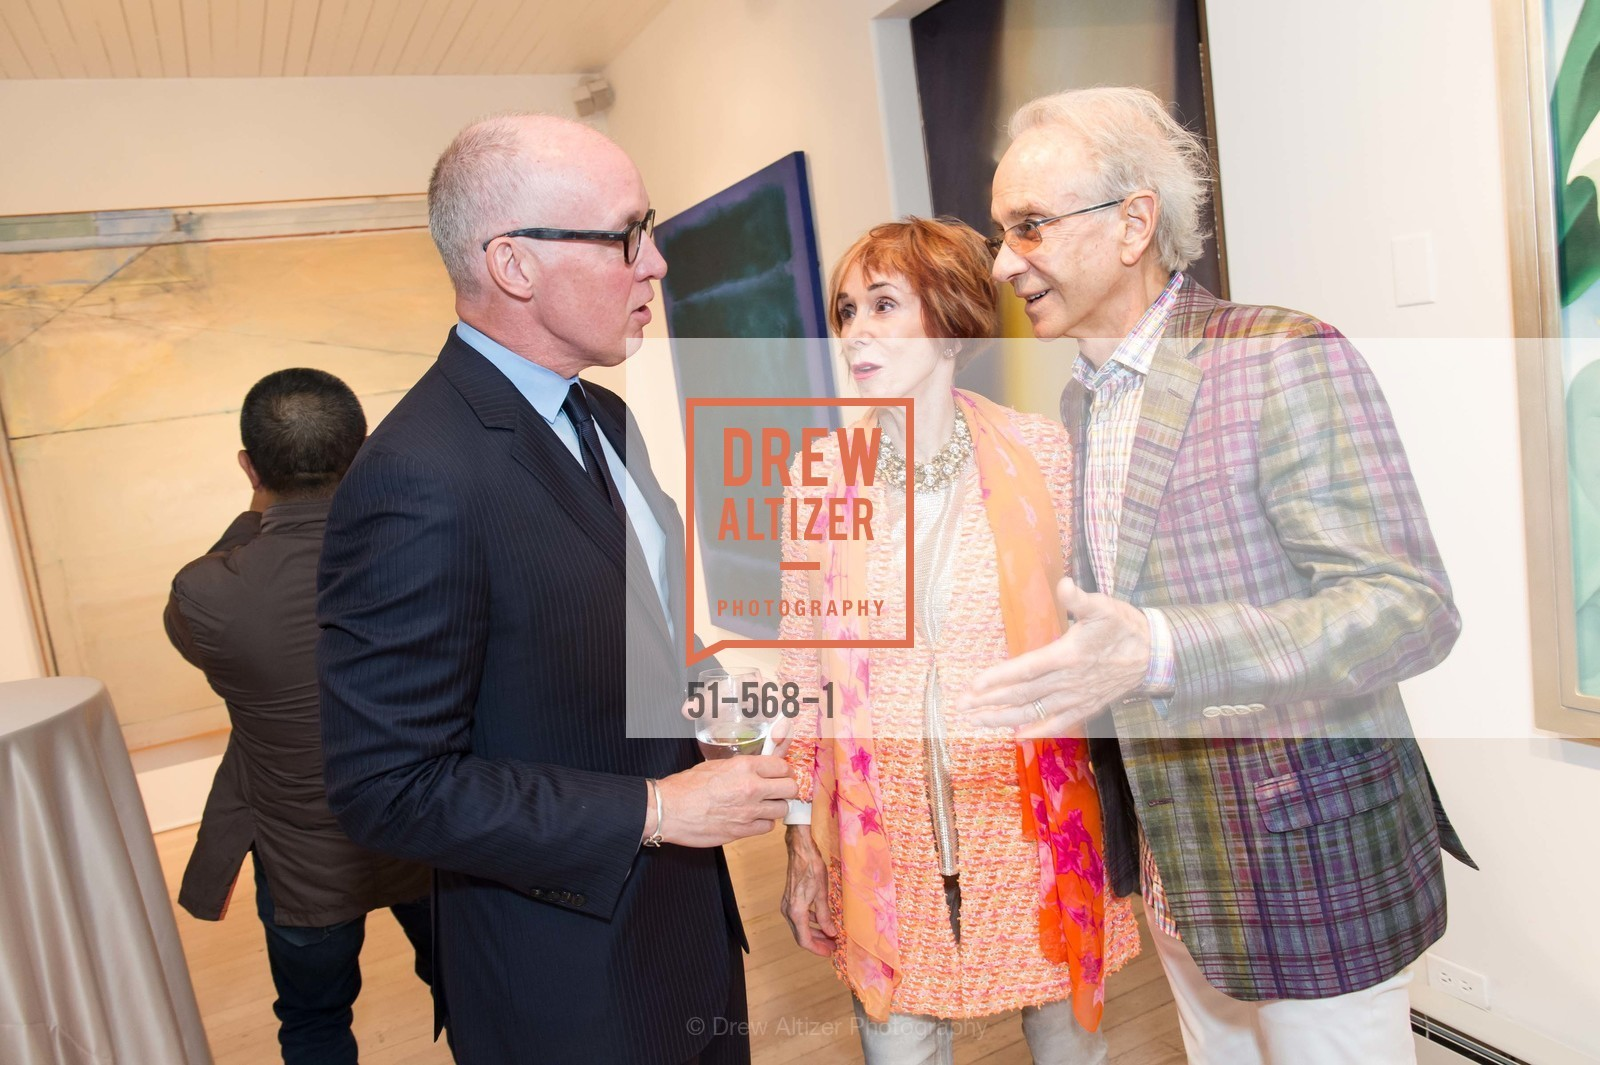 Anthony Grant, Norah Stone, Norman Stone, SOTHEBY'S  Hosts a Private Viewing of Highlights from the Collection of MRS. PAUL MELLON, US, September 17th, 2014,Drew Altizer, Drew Altizer Photography, full-service agency, private events, San Francisco photographer, photographer california